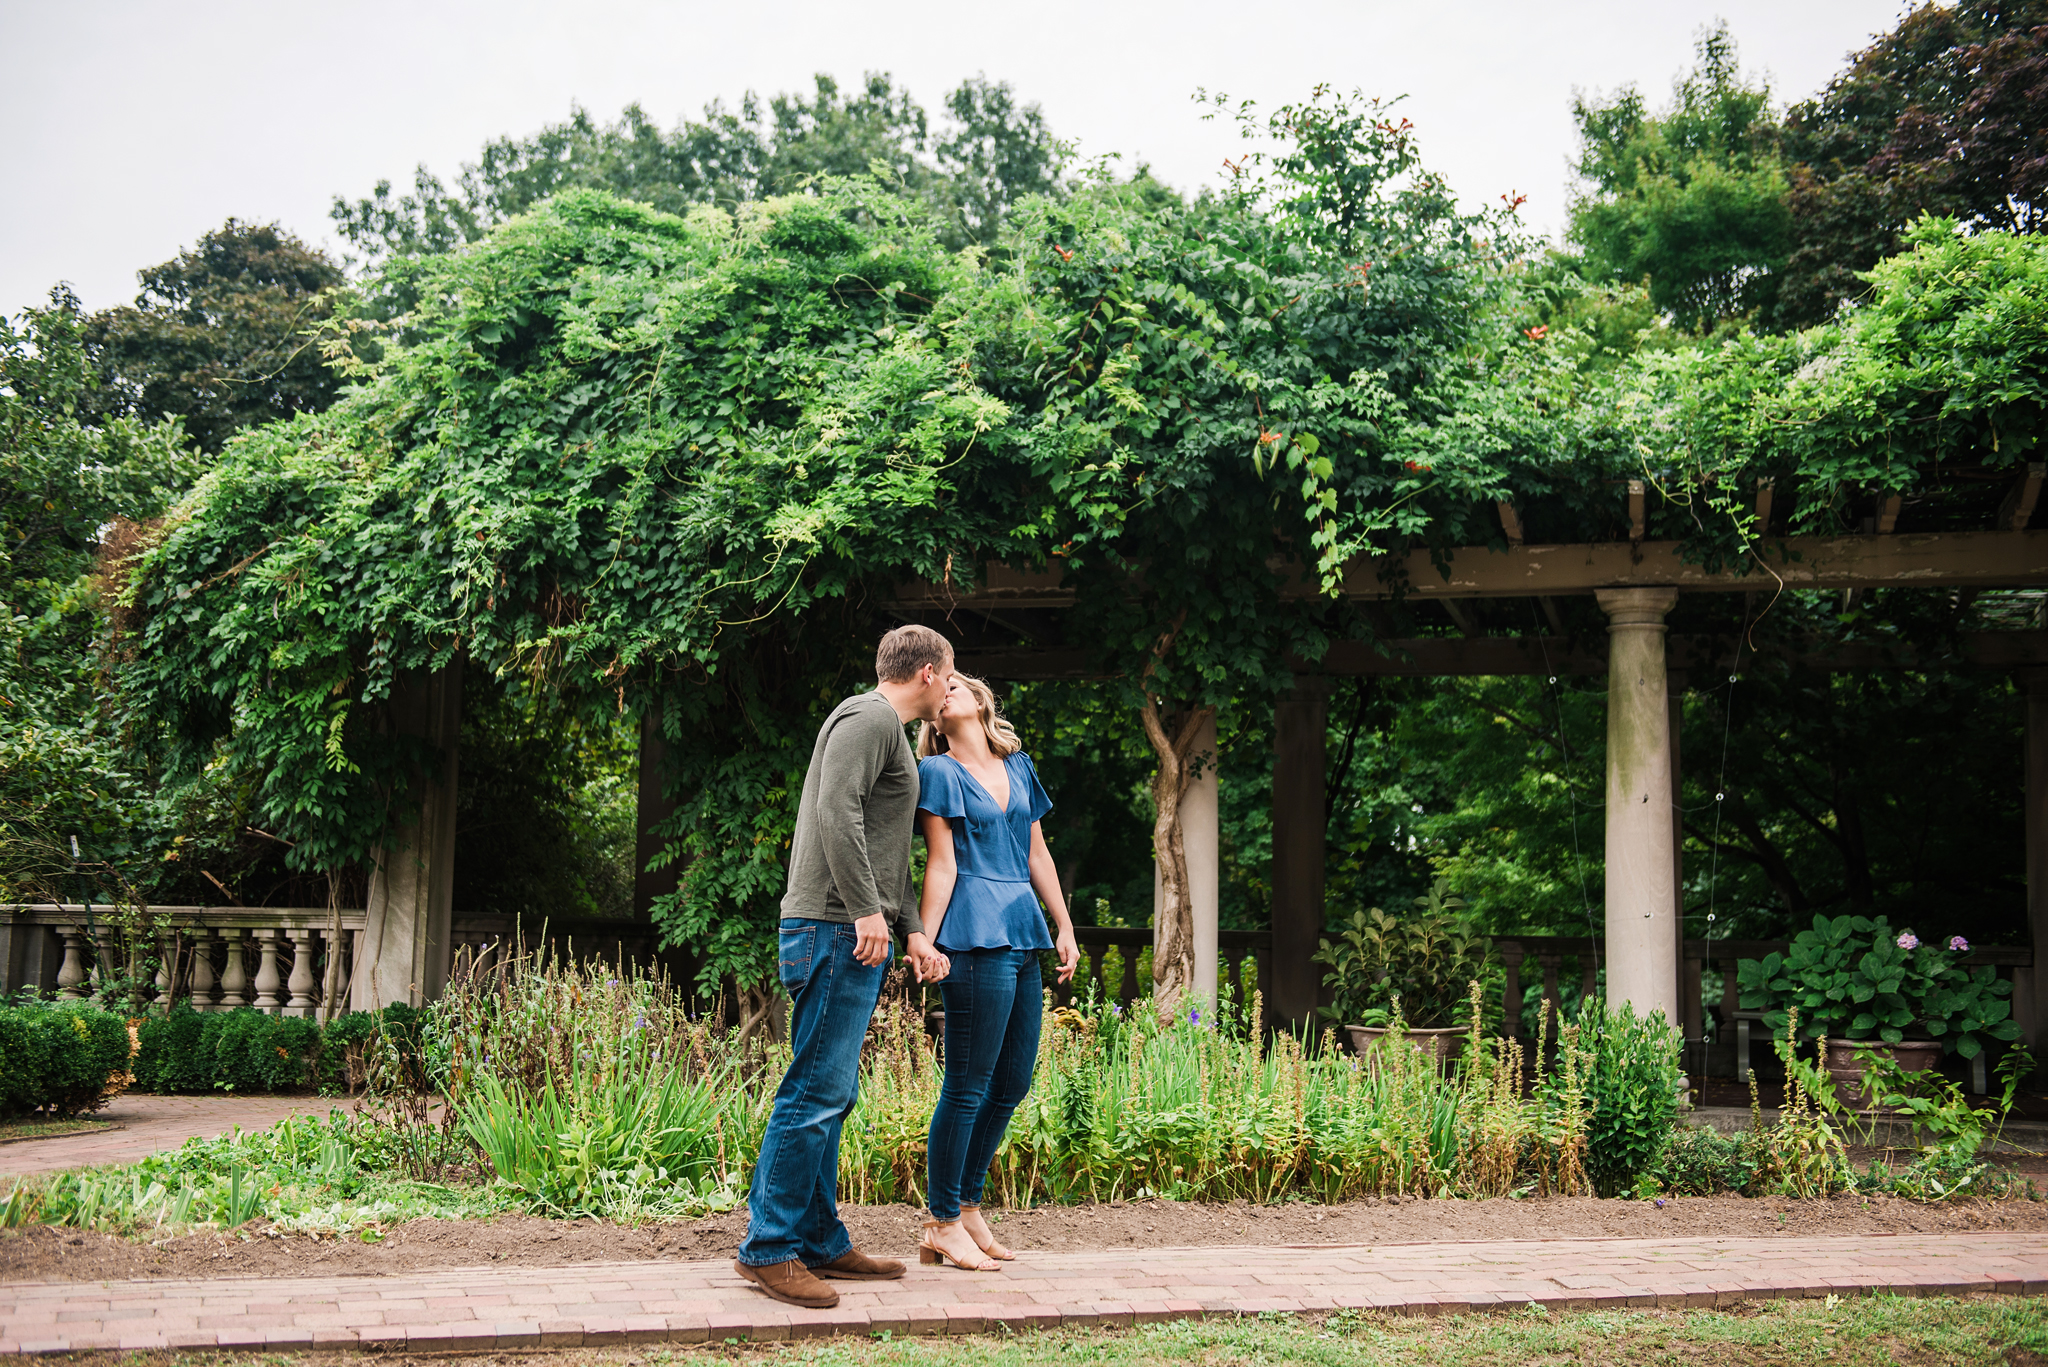 George_Eastman_House_Rochester_Yacht_Club_Rochester_Engagement_Session_JILL_STUDIO_Rochester_NY_Photographer_DSC_8093.jpg